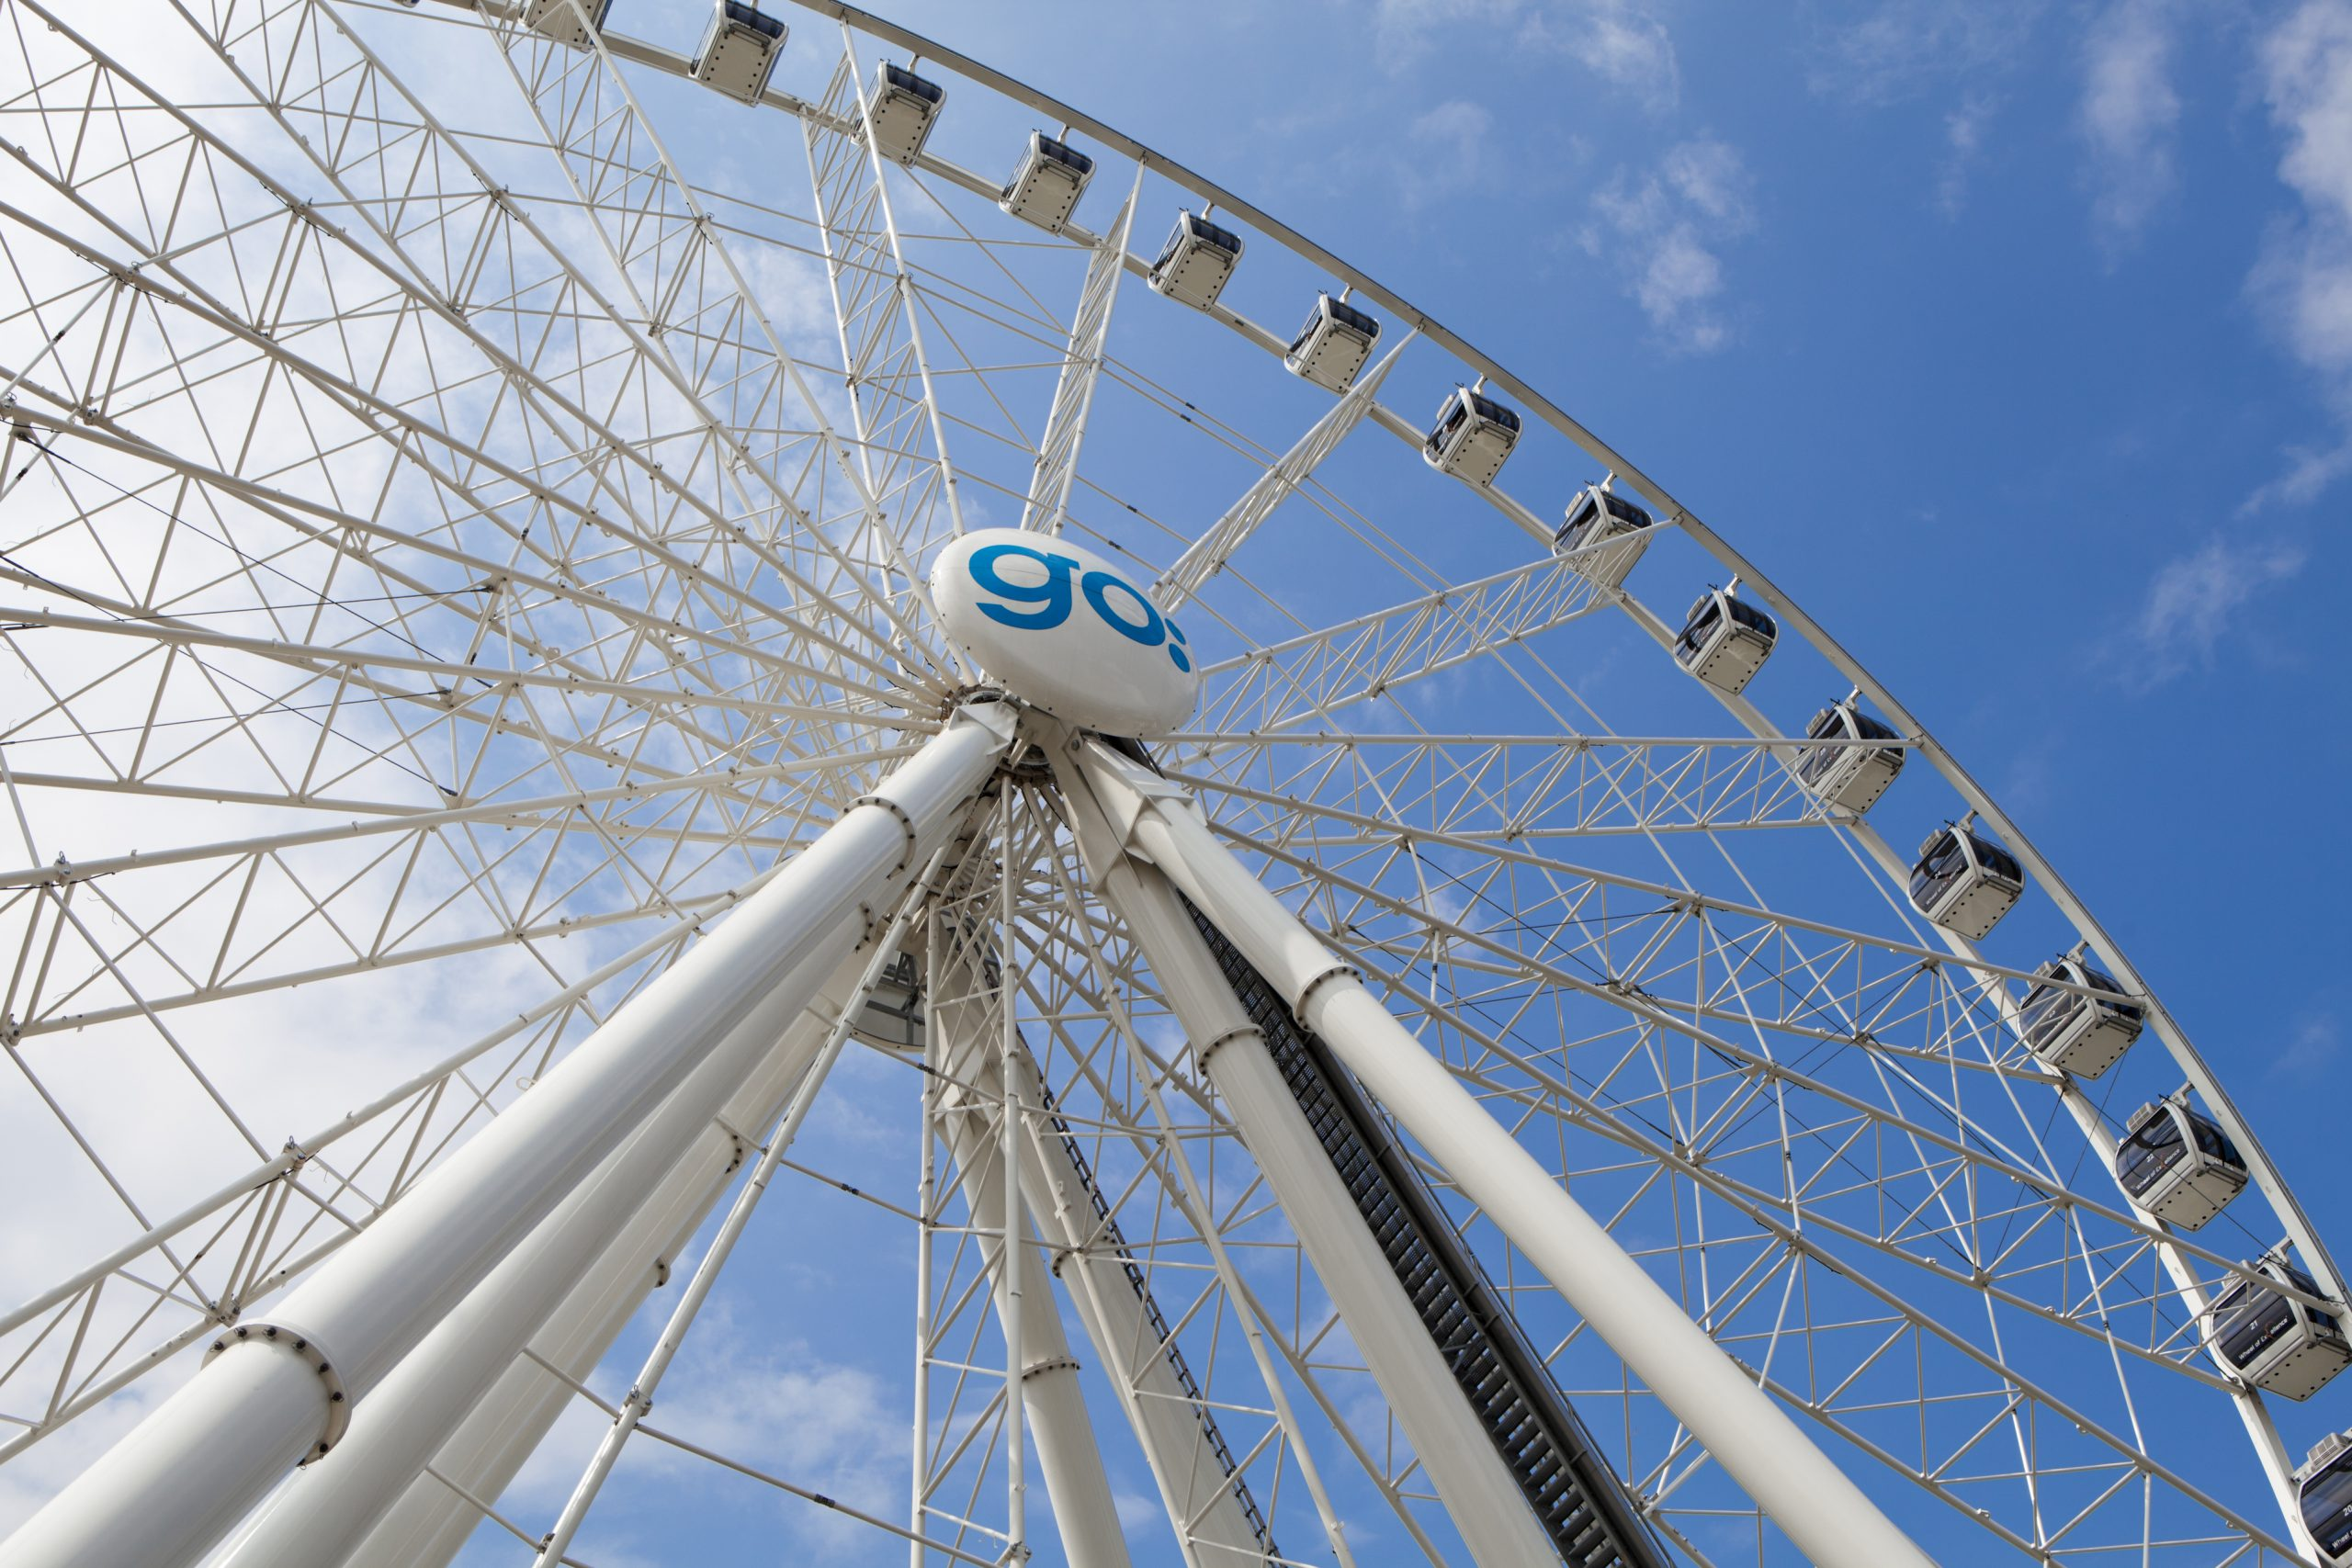 Göteborg, Sweden - July 3, 2011: Goteborgshjulet, located at Kanaltorget in Gothenburg, is a giant ferris wheel 60 metres tall. It has 42 pods.